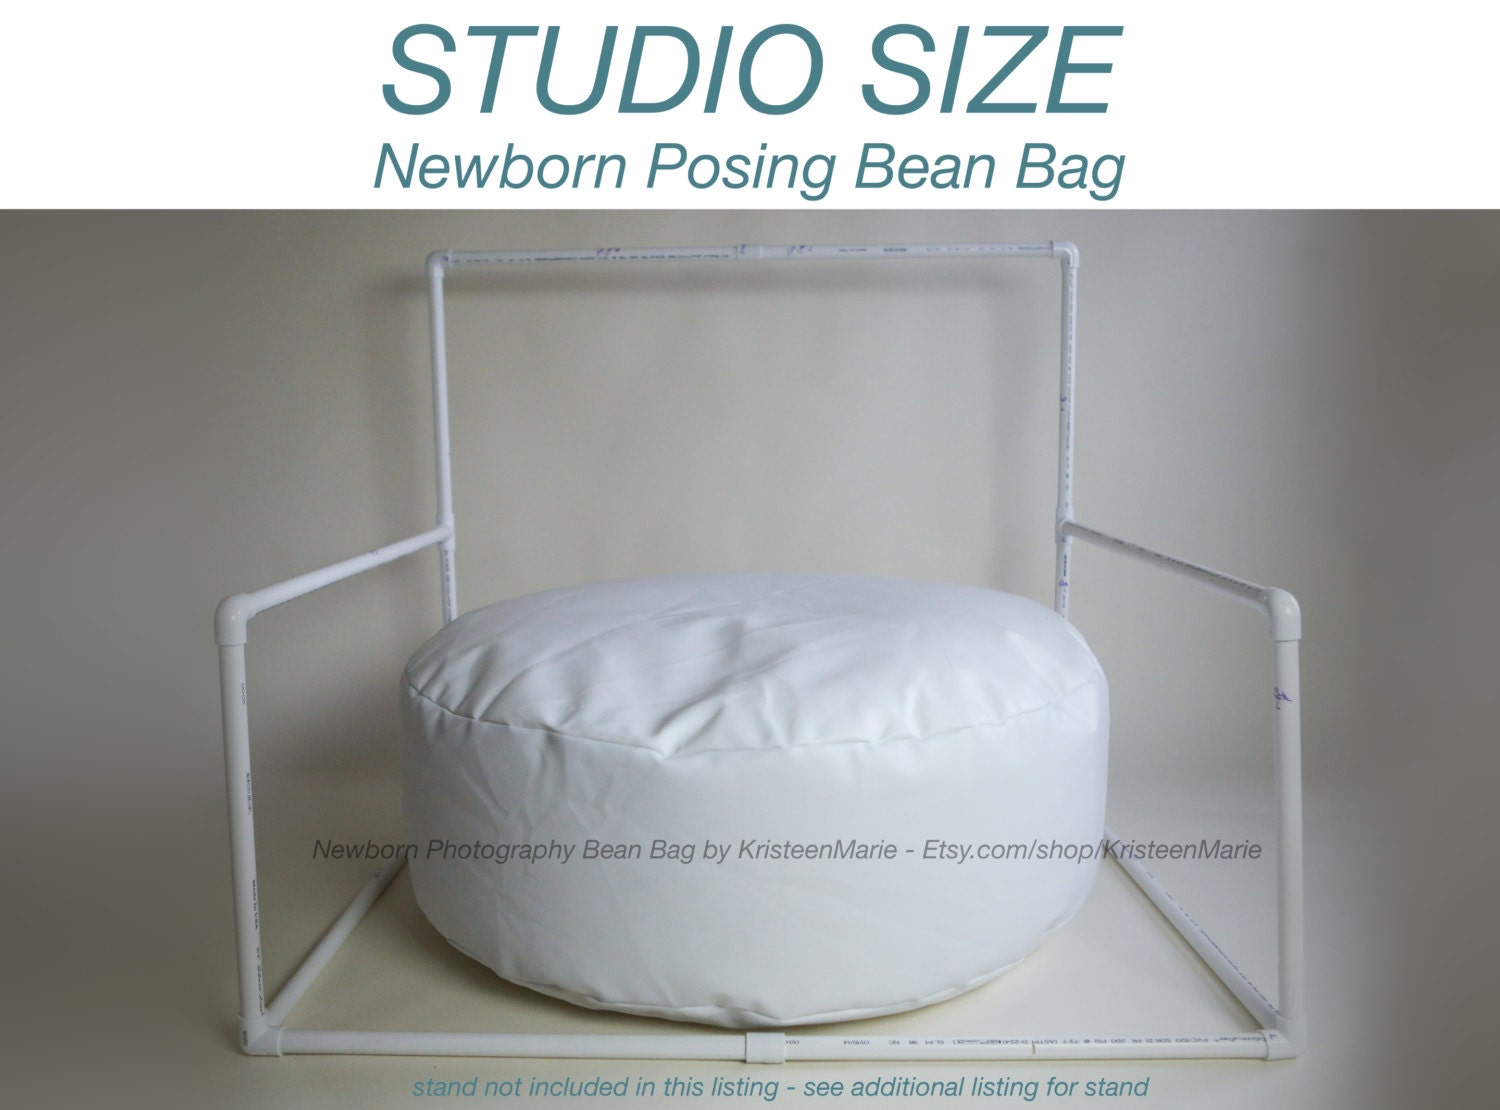 Newborn Bean Bag Posting Beanbag For Photography Large Etsy